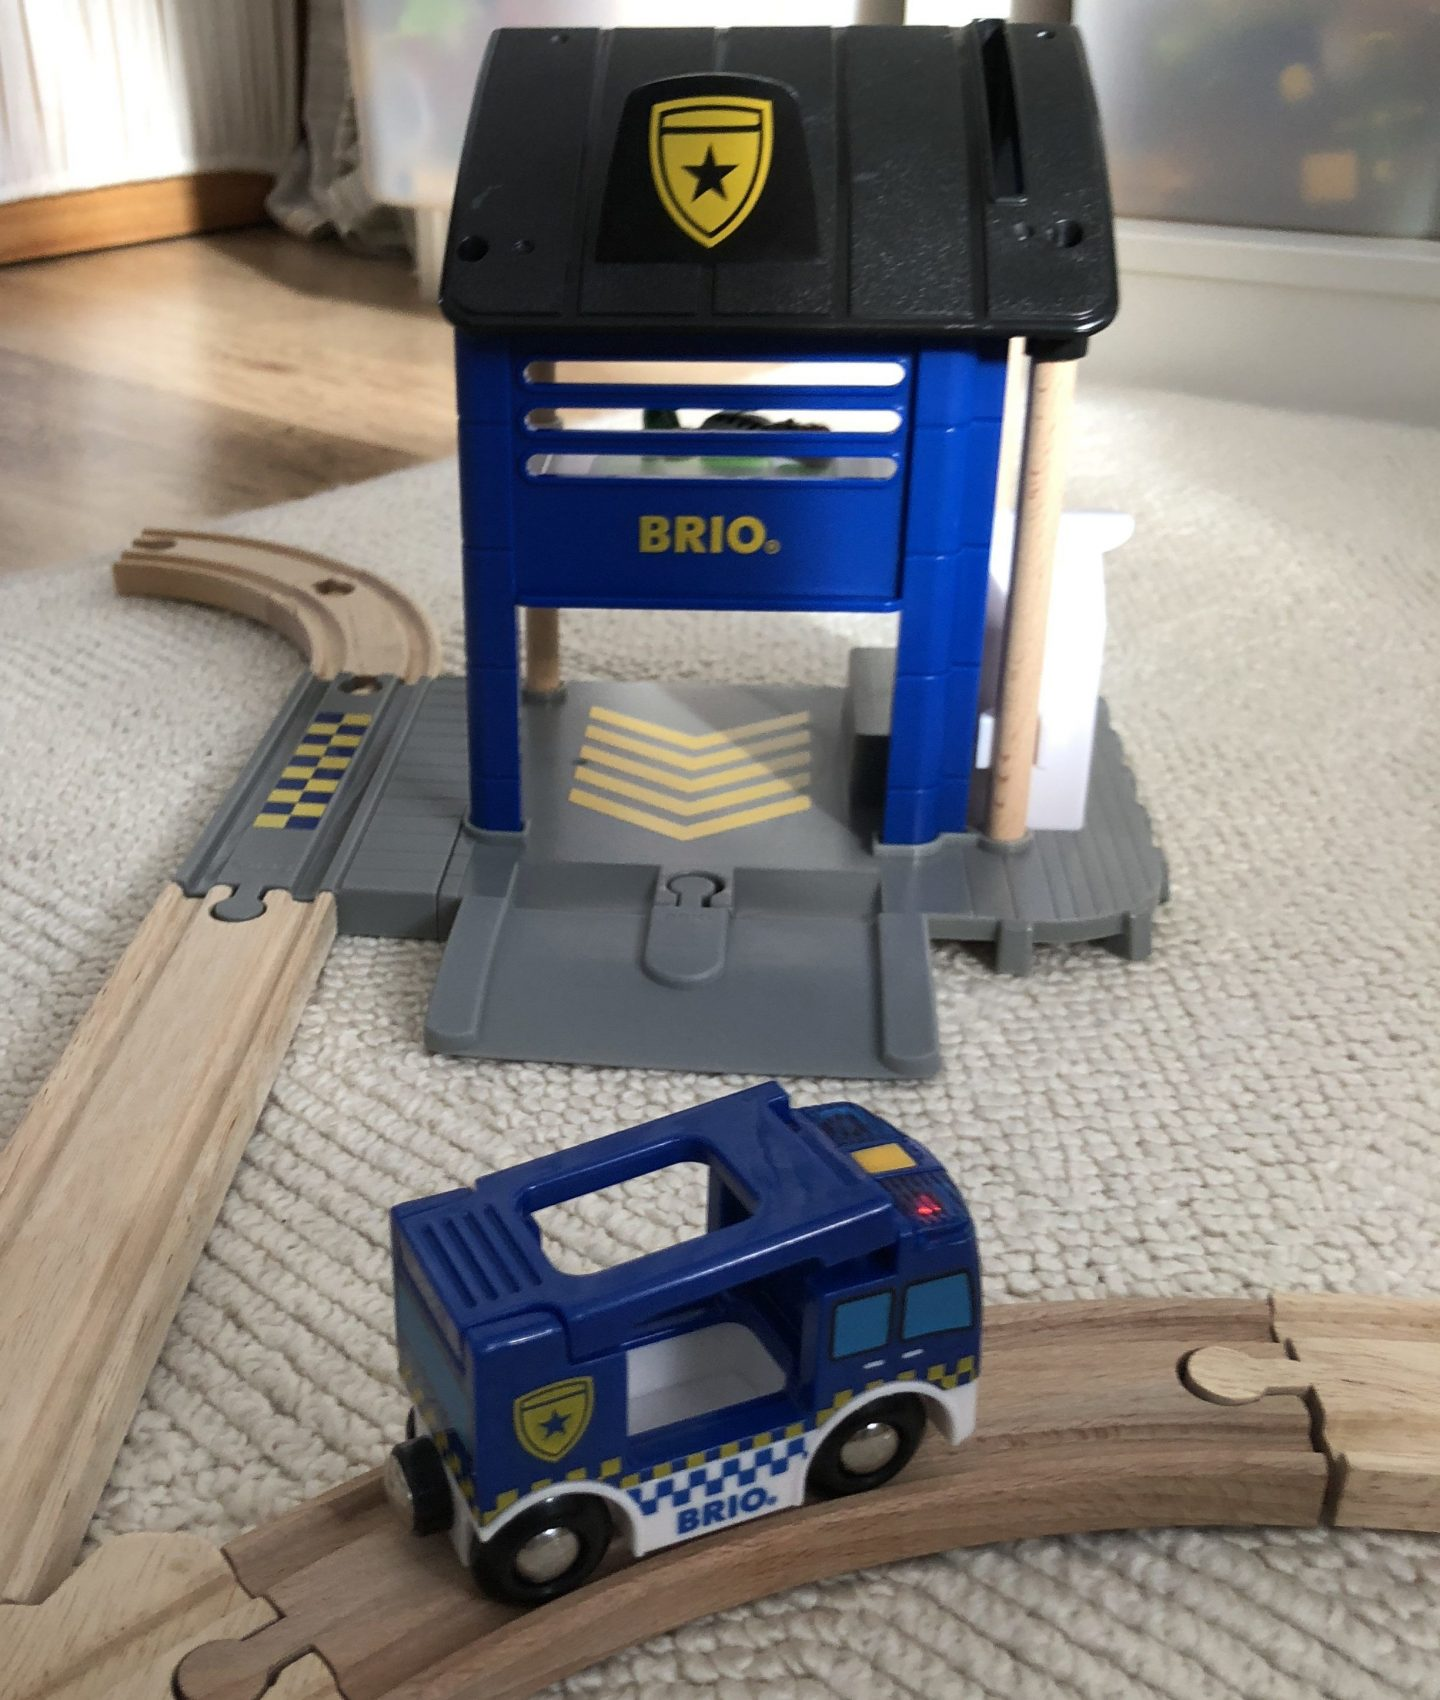 BRIO Police Station [REVIEW]